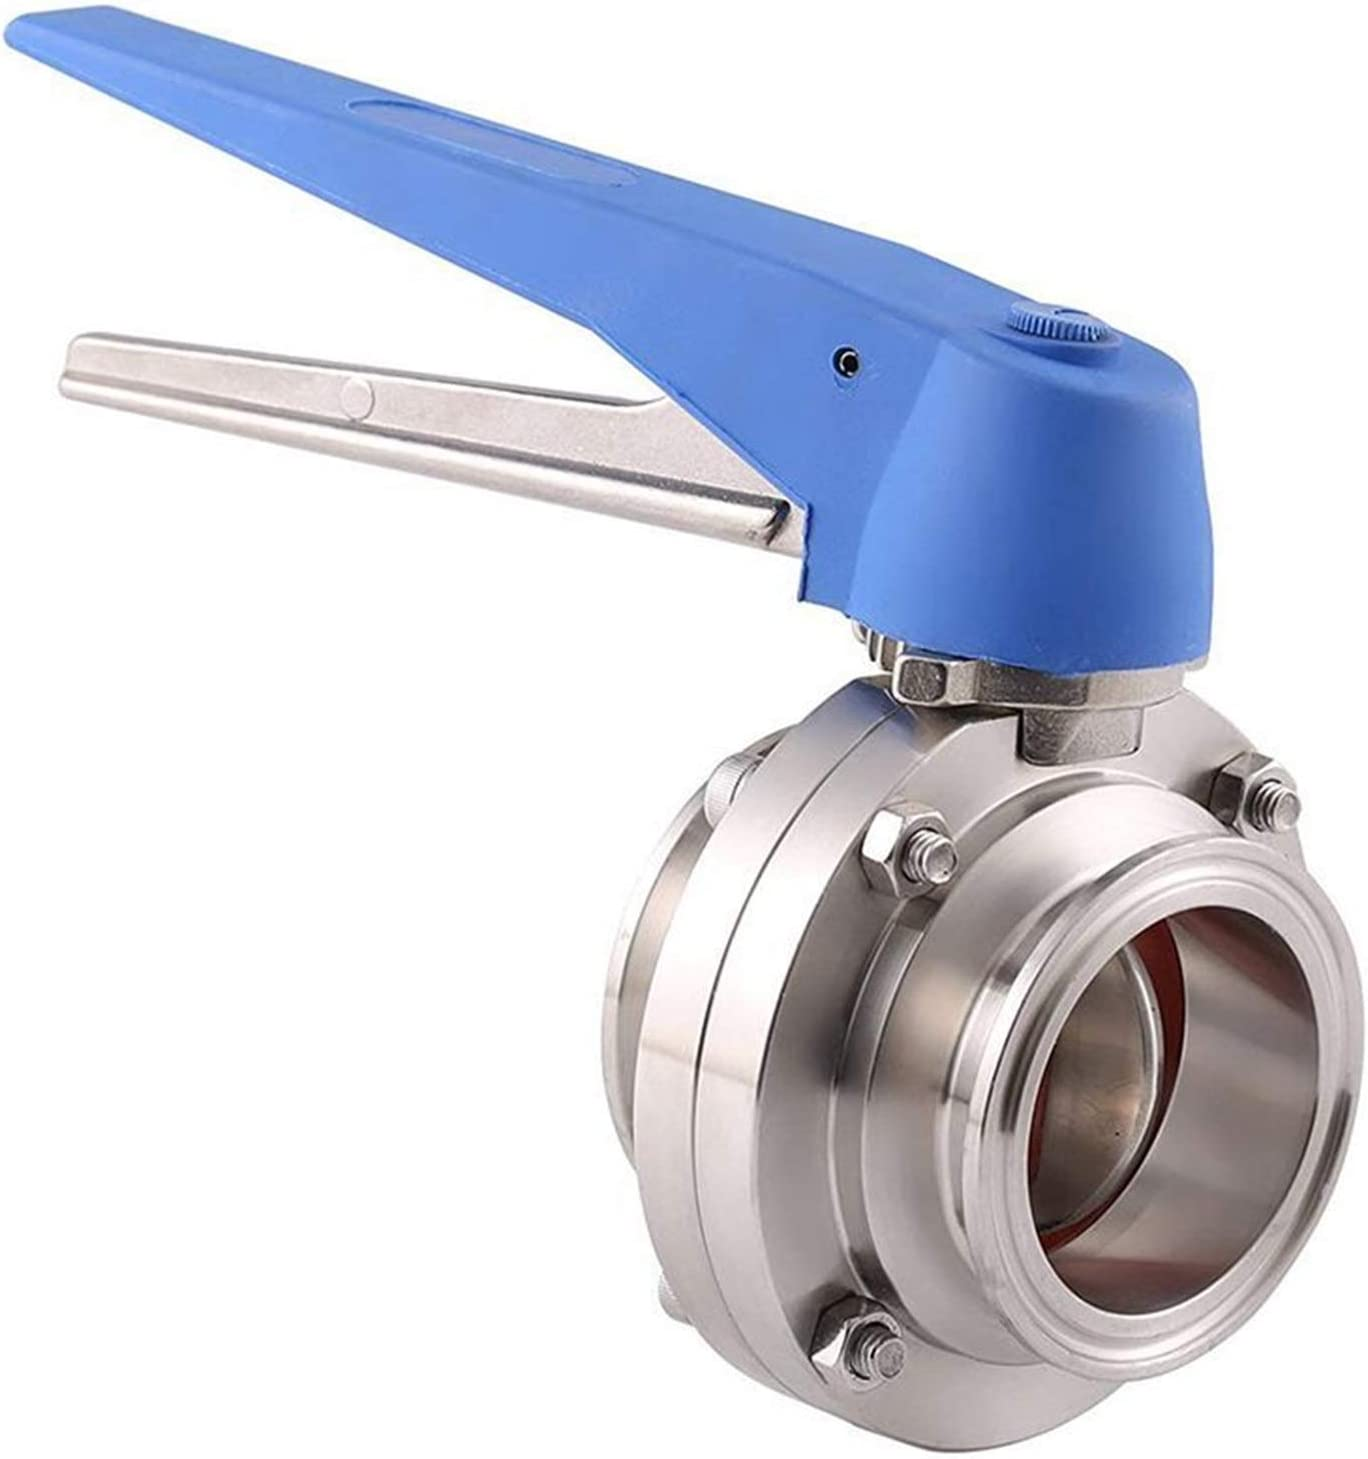 YANGDONG Sanitary 304 Stainless Steel 1.5 Inch Tri Clamp Butterfly Valve Squeeze Trigger 1-1//2 Inch 38mm